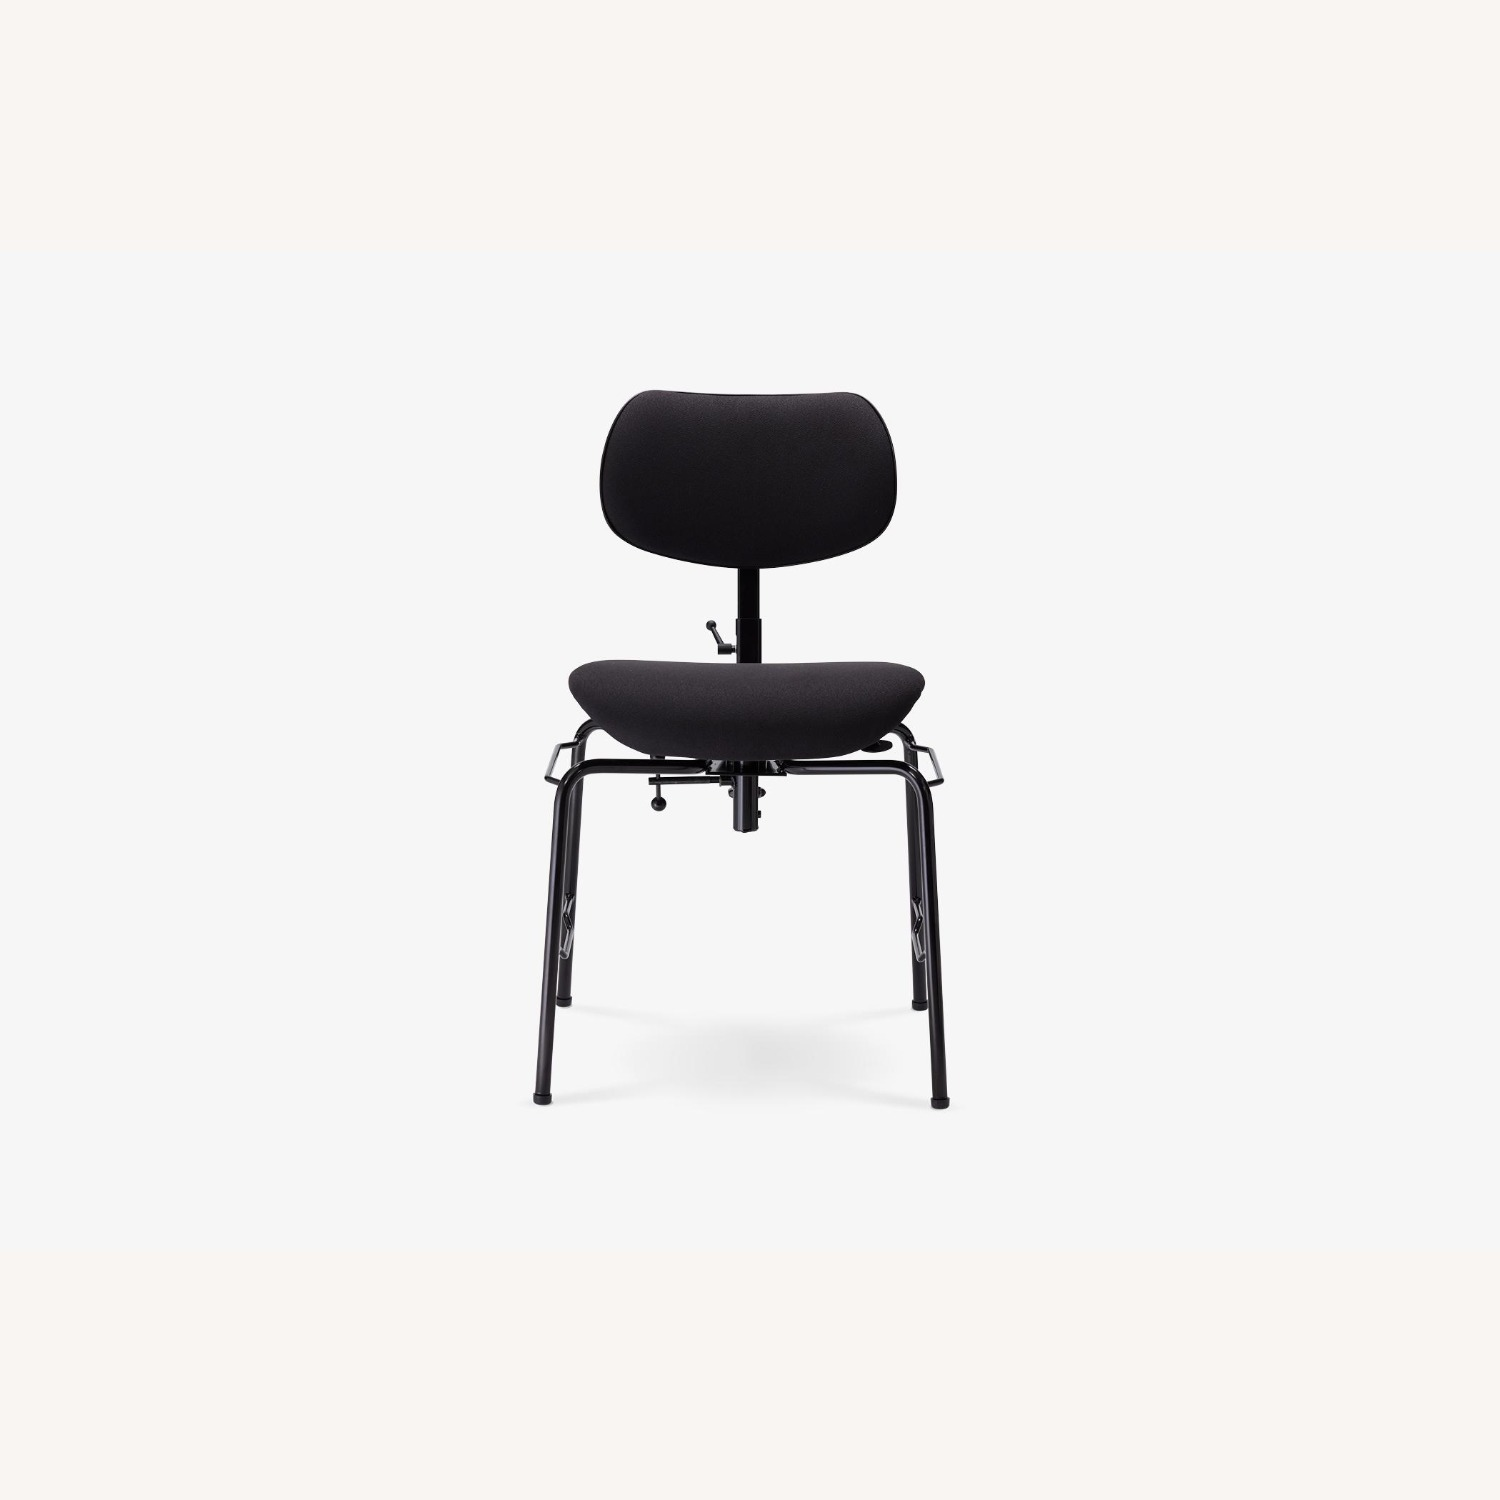 "Wilde + Spieth ""Orchestra"" Chair Black - image-6"